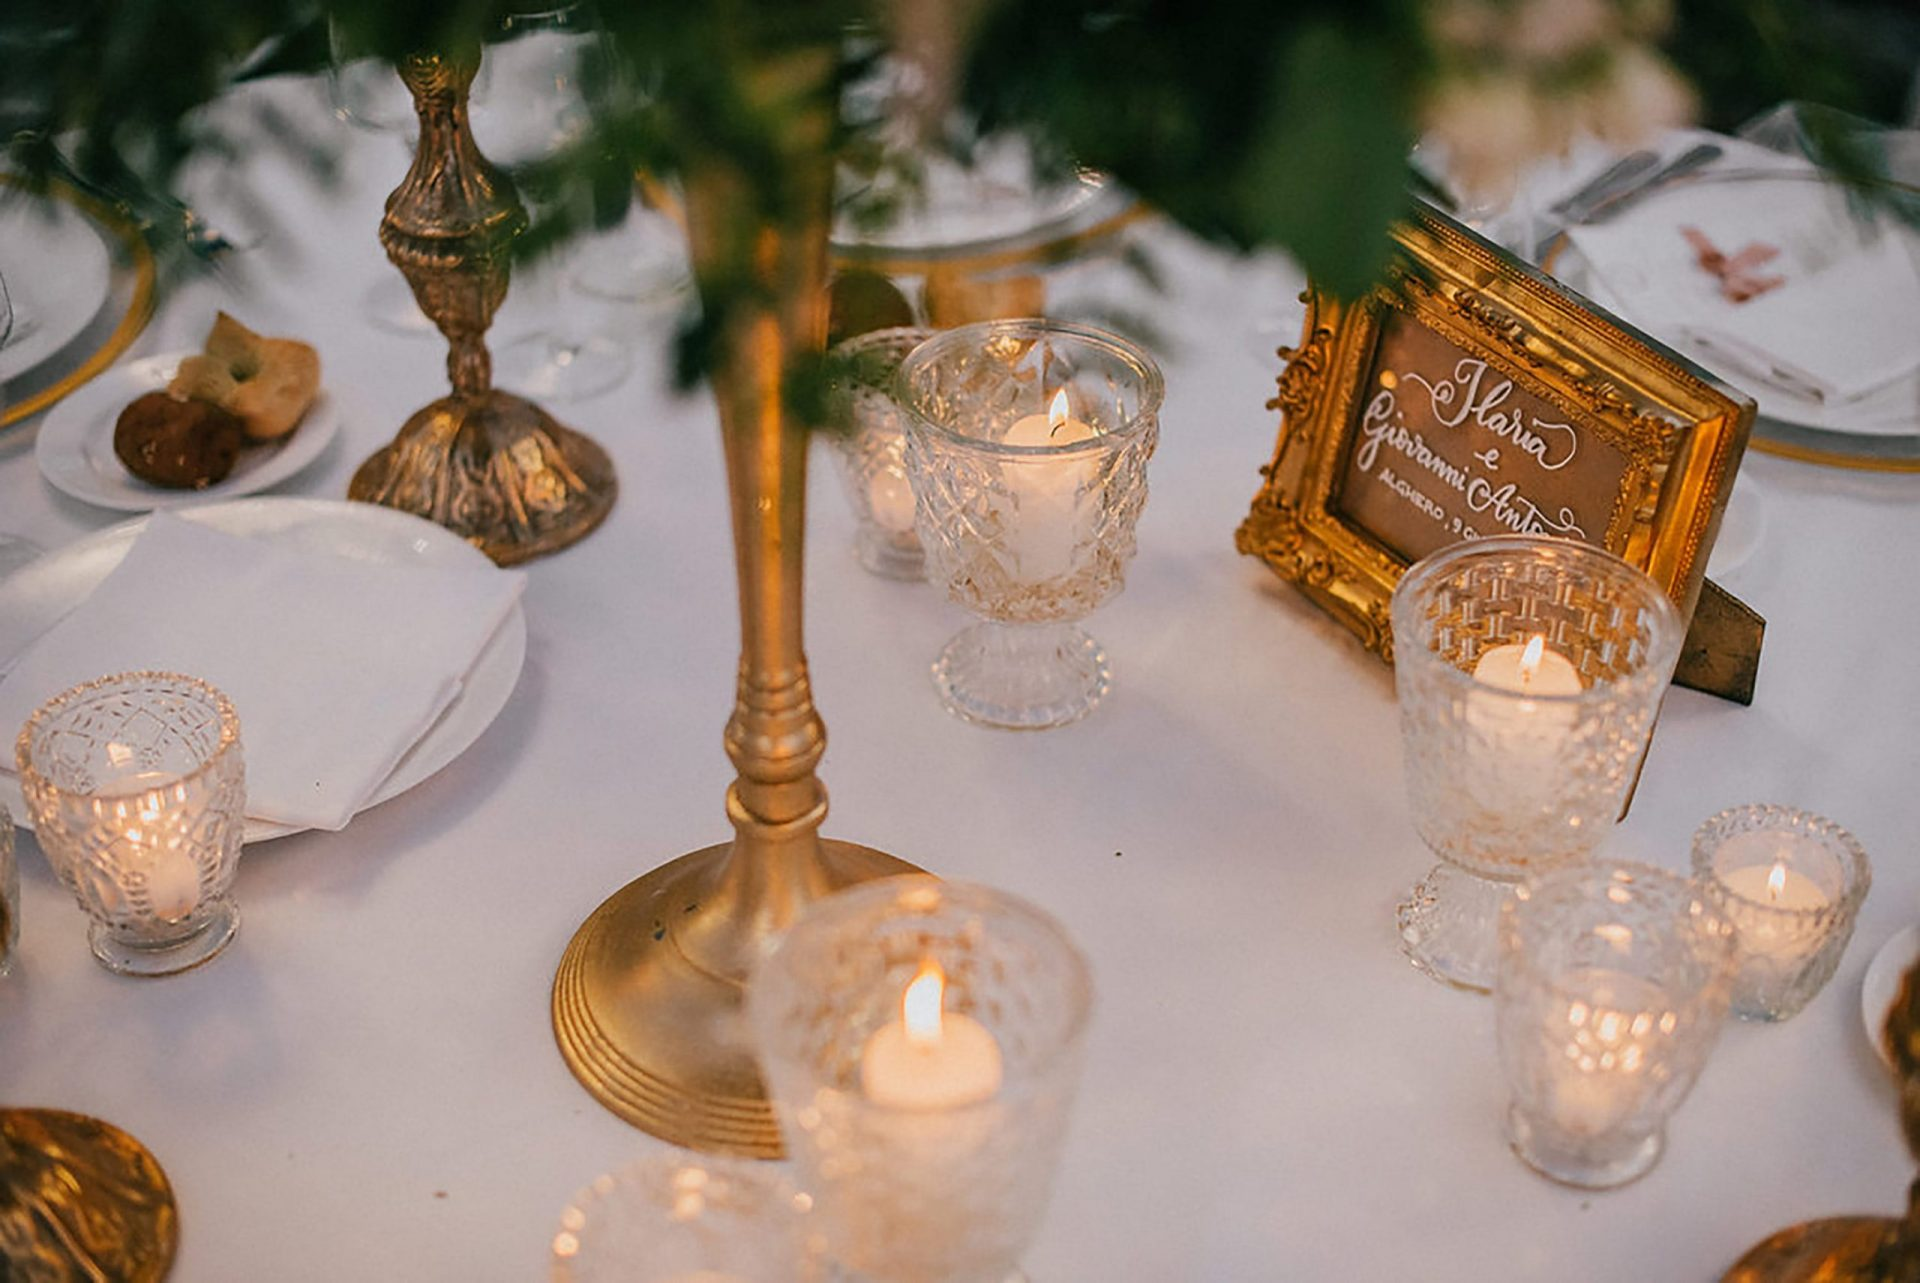 Ilaria e Giovanni, al fresco wedding, old gold and glass table decor